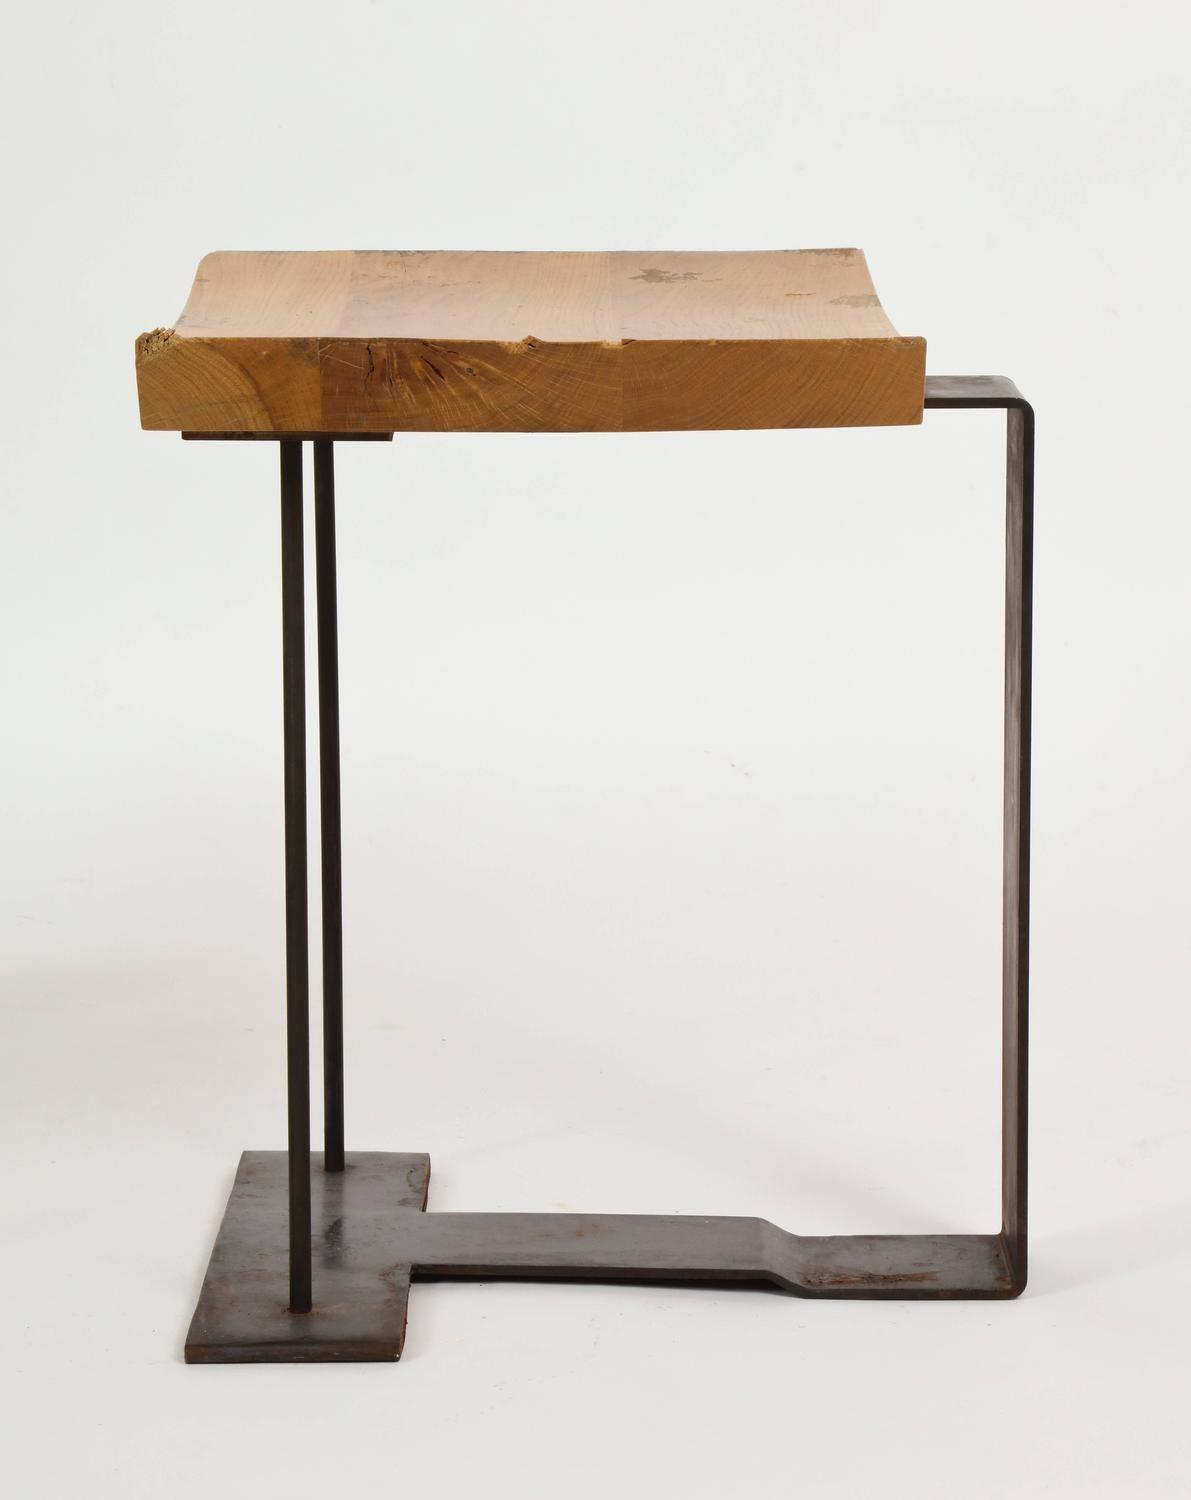 Iron Wood Stools Tables After Pierre Chareau Sn2